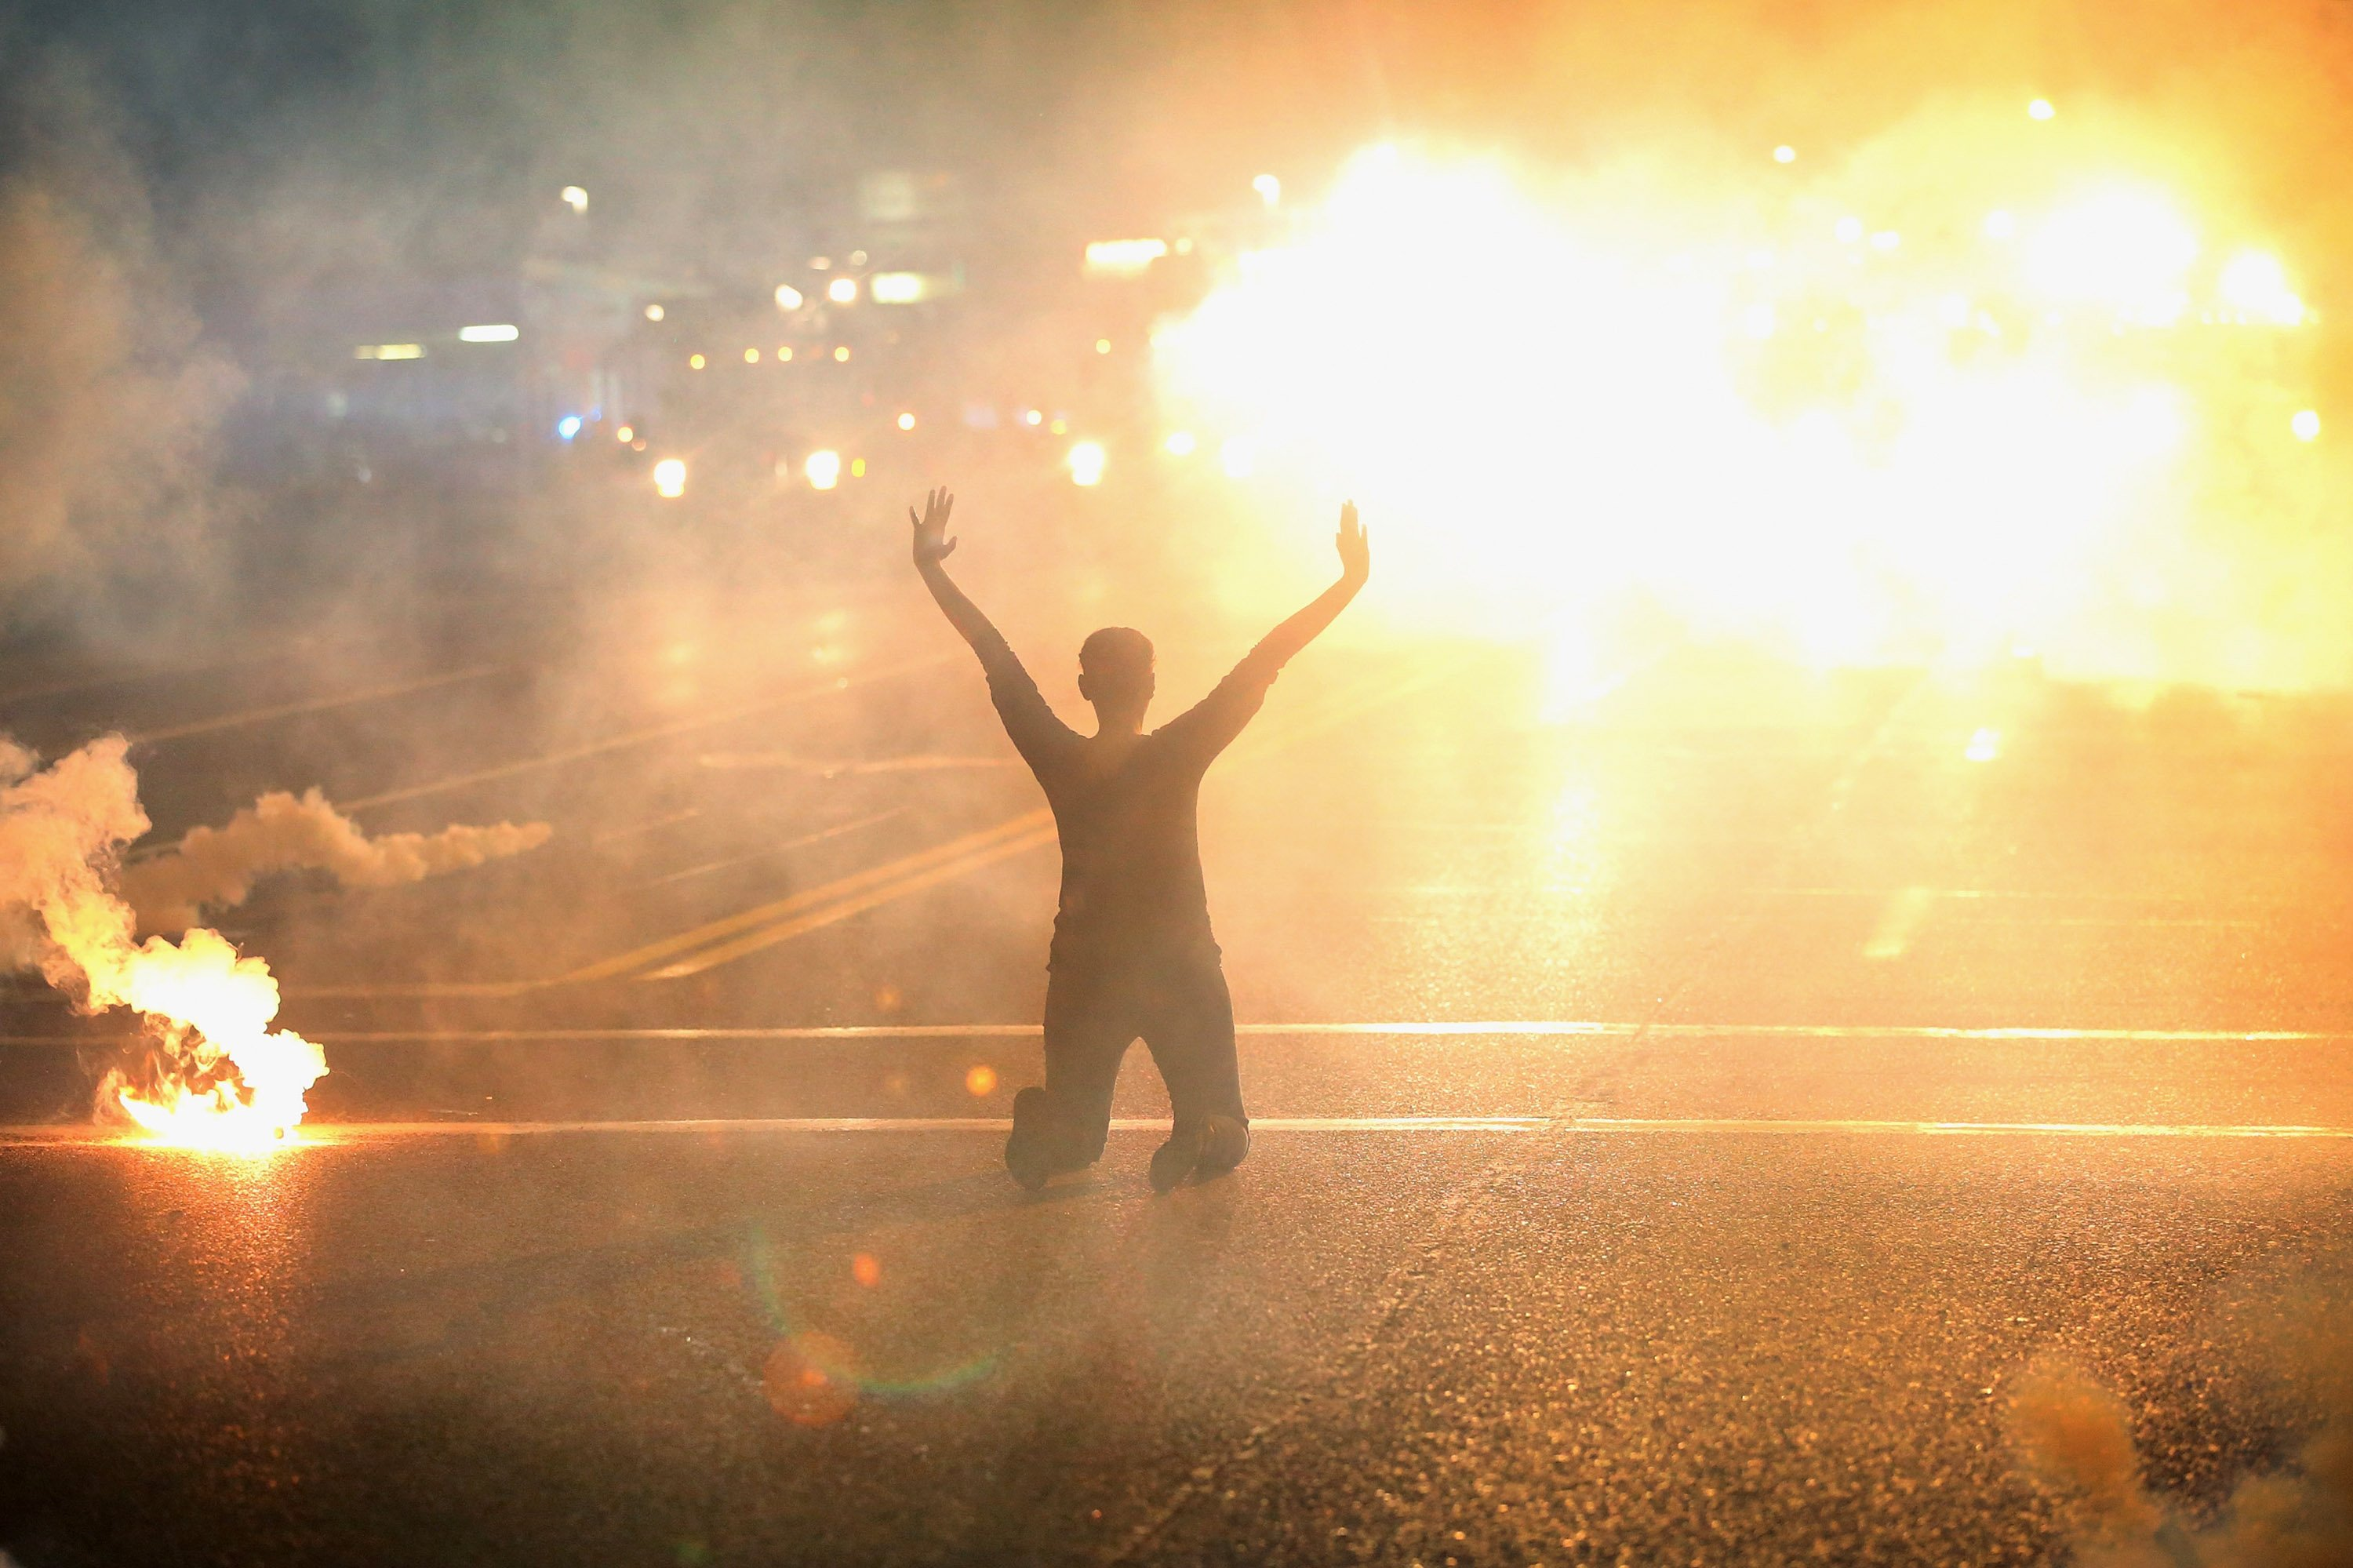 Tear gas rains down on a woman kneeling in the street with her hands in the air during a demonstration in Ferguson on Aug. 17, 2014. The  hands up, don't shoot  pose became the defining gesture of the protests.